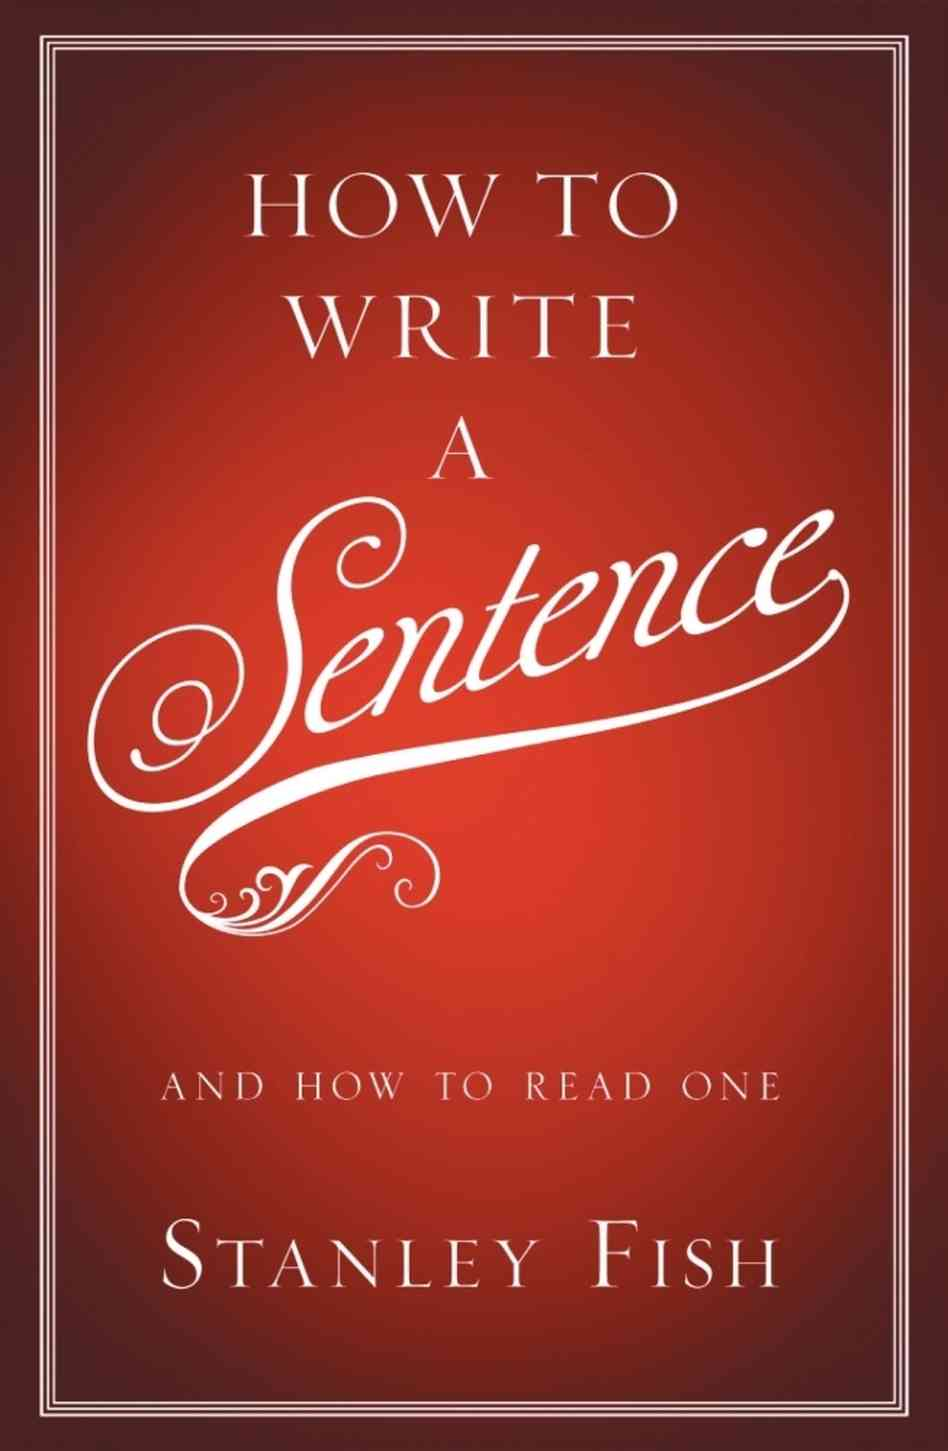 How to Write a Sentence - Best Books on Reading and Writing